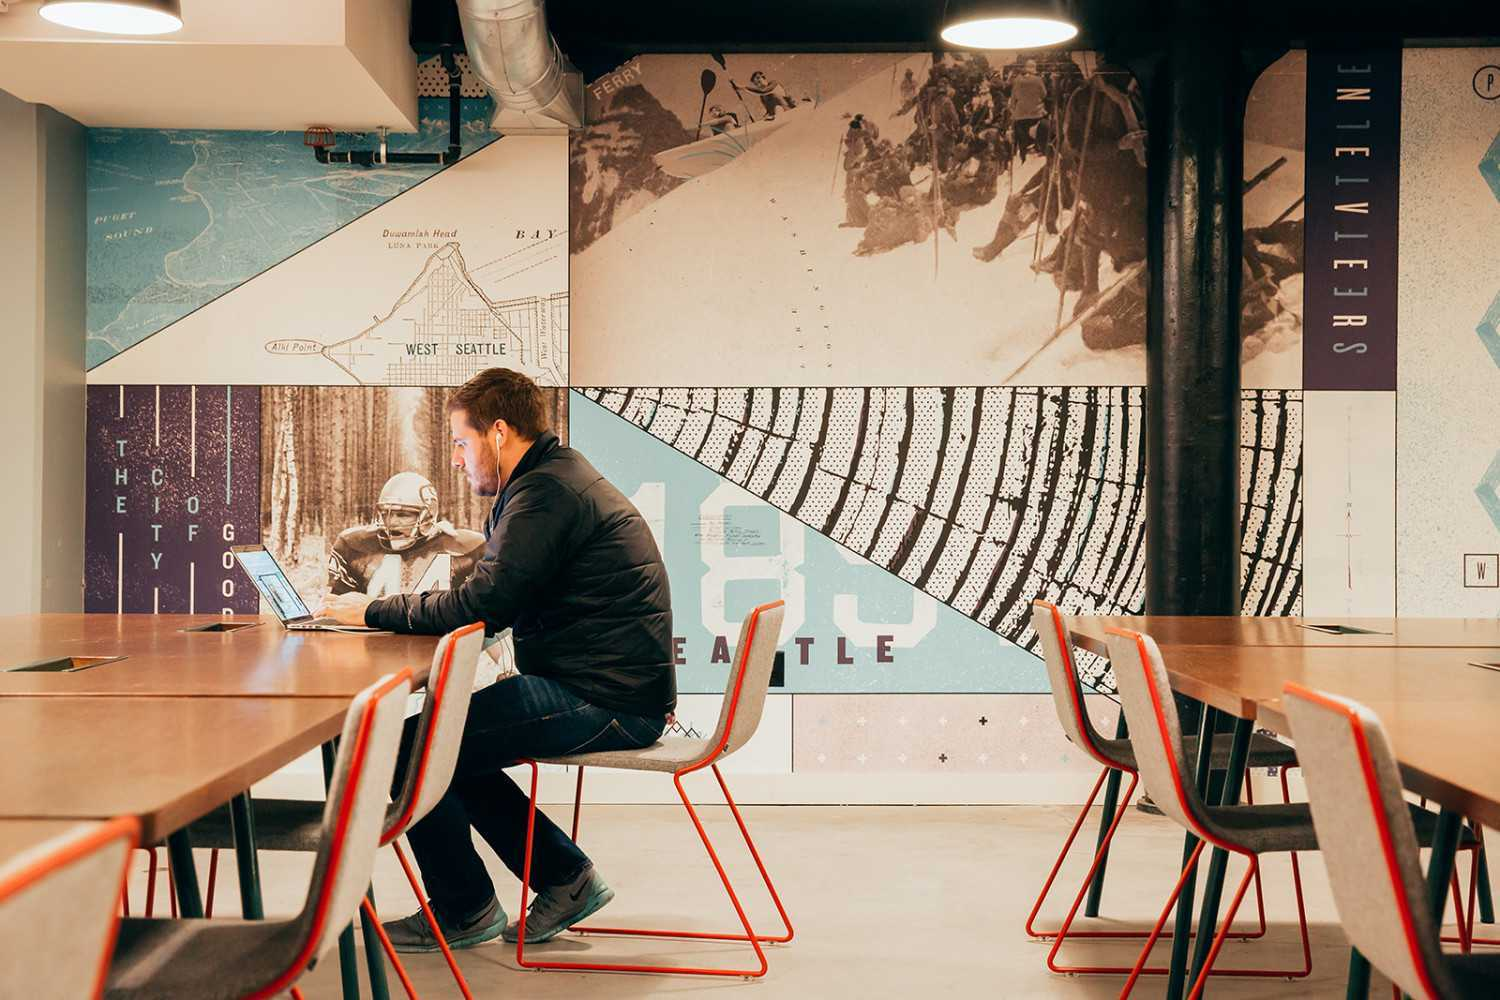 Meeting room di WeWork, Seattle (Sumber: www.officelovin.com)